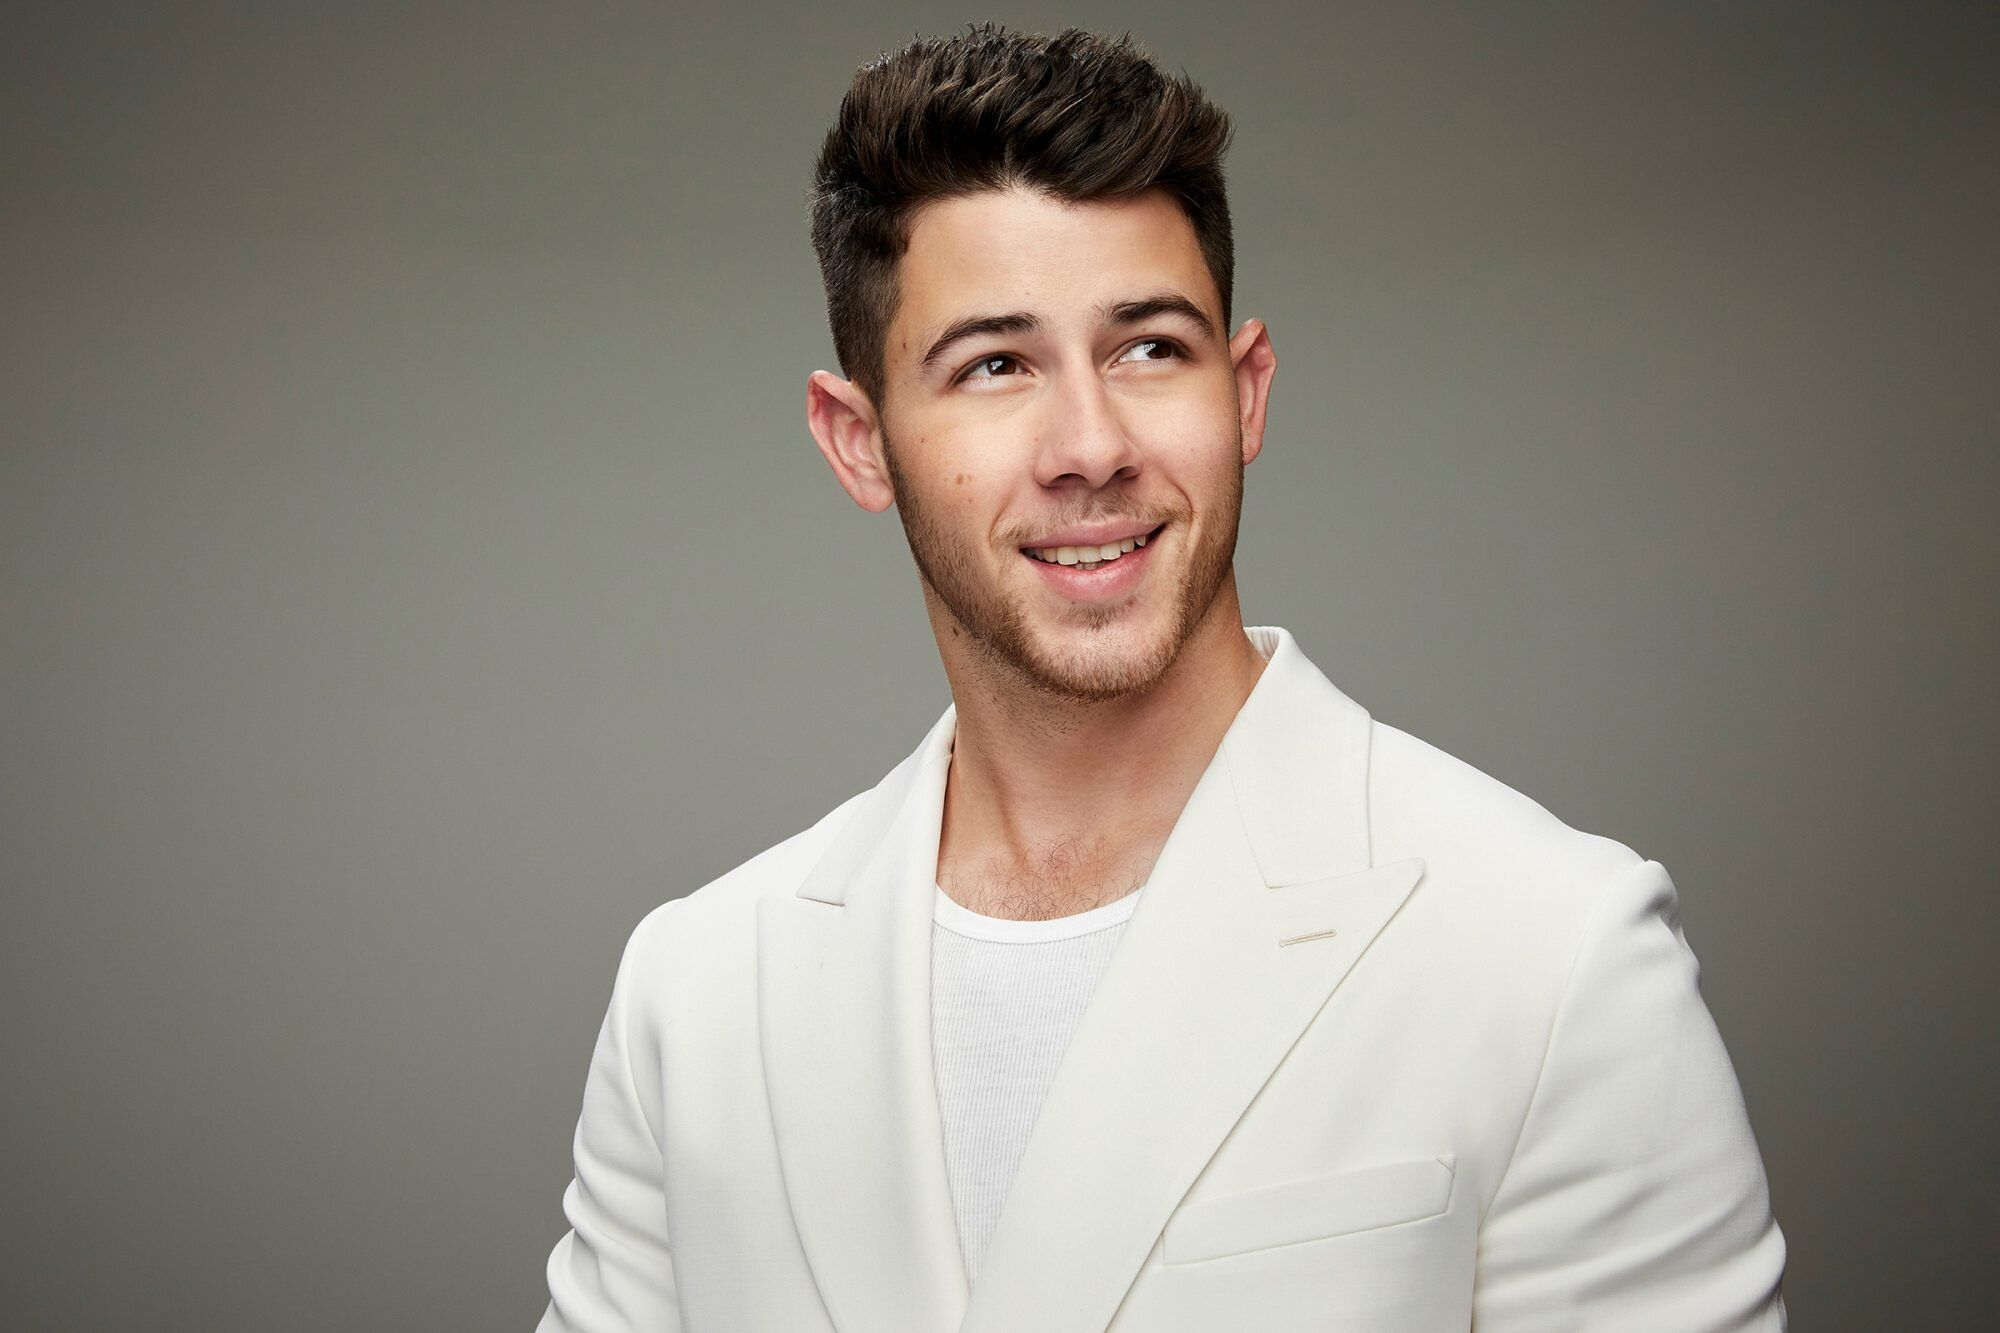 Nick Jonas husband of Indian actress Priyanka Chopra ready to make SNL Hosting Debut, May also get to serve As Musical Guest